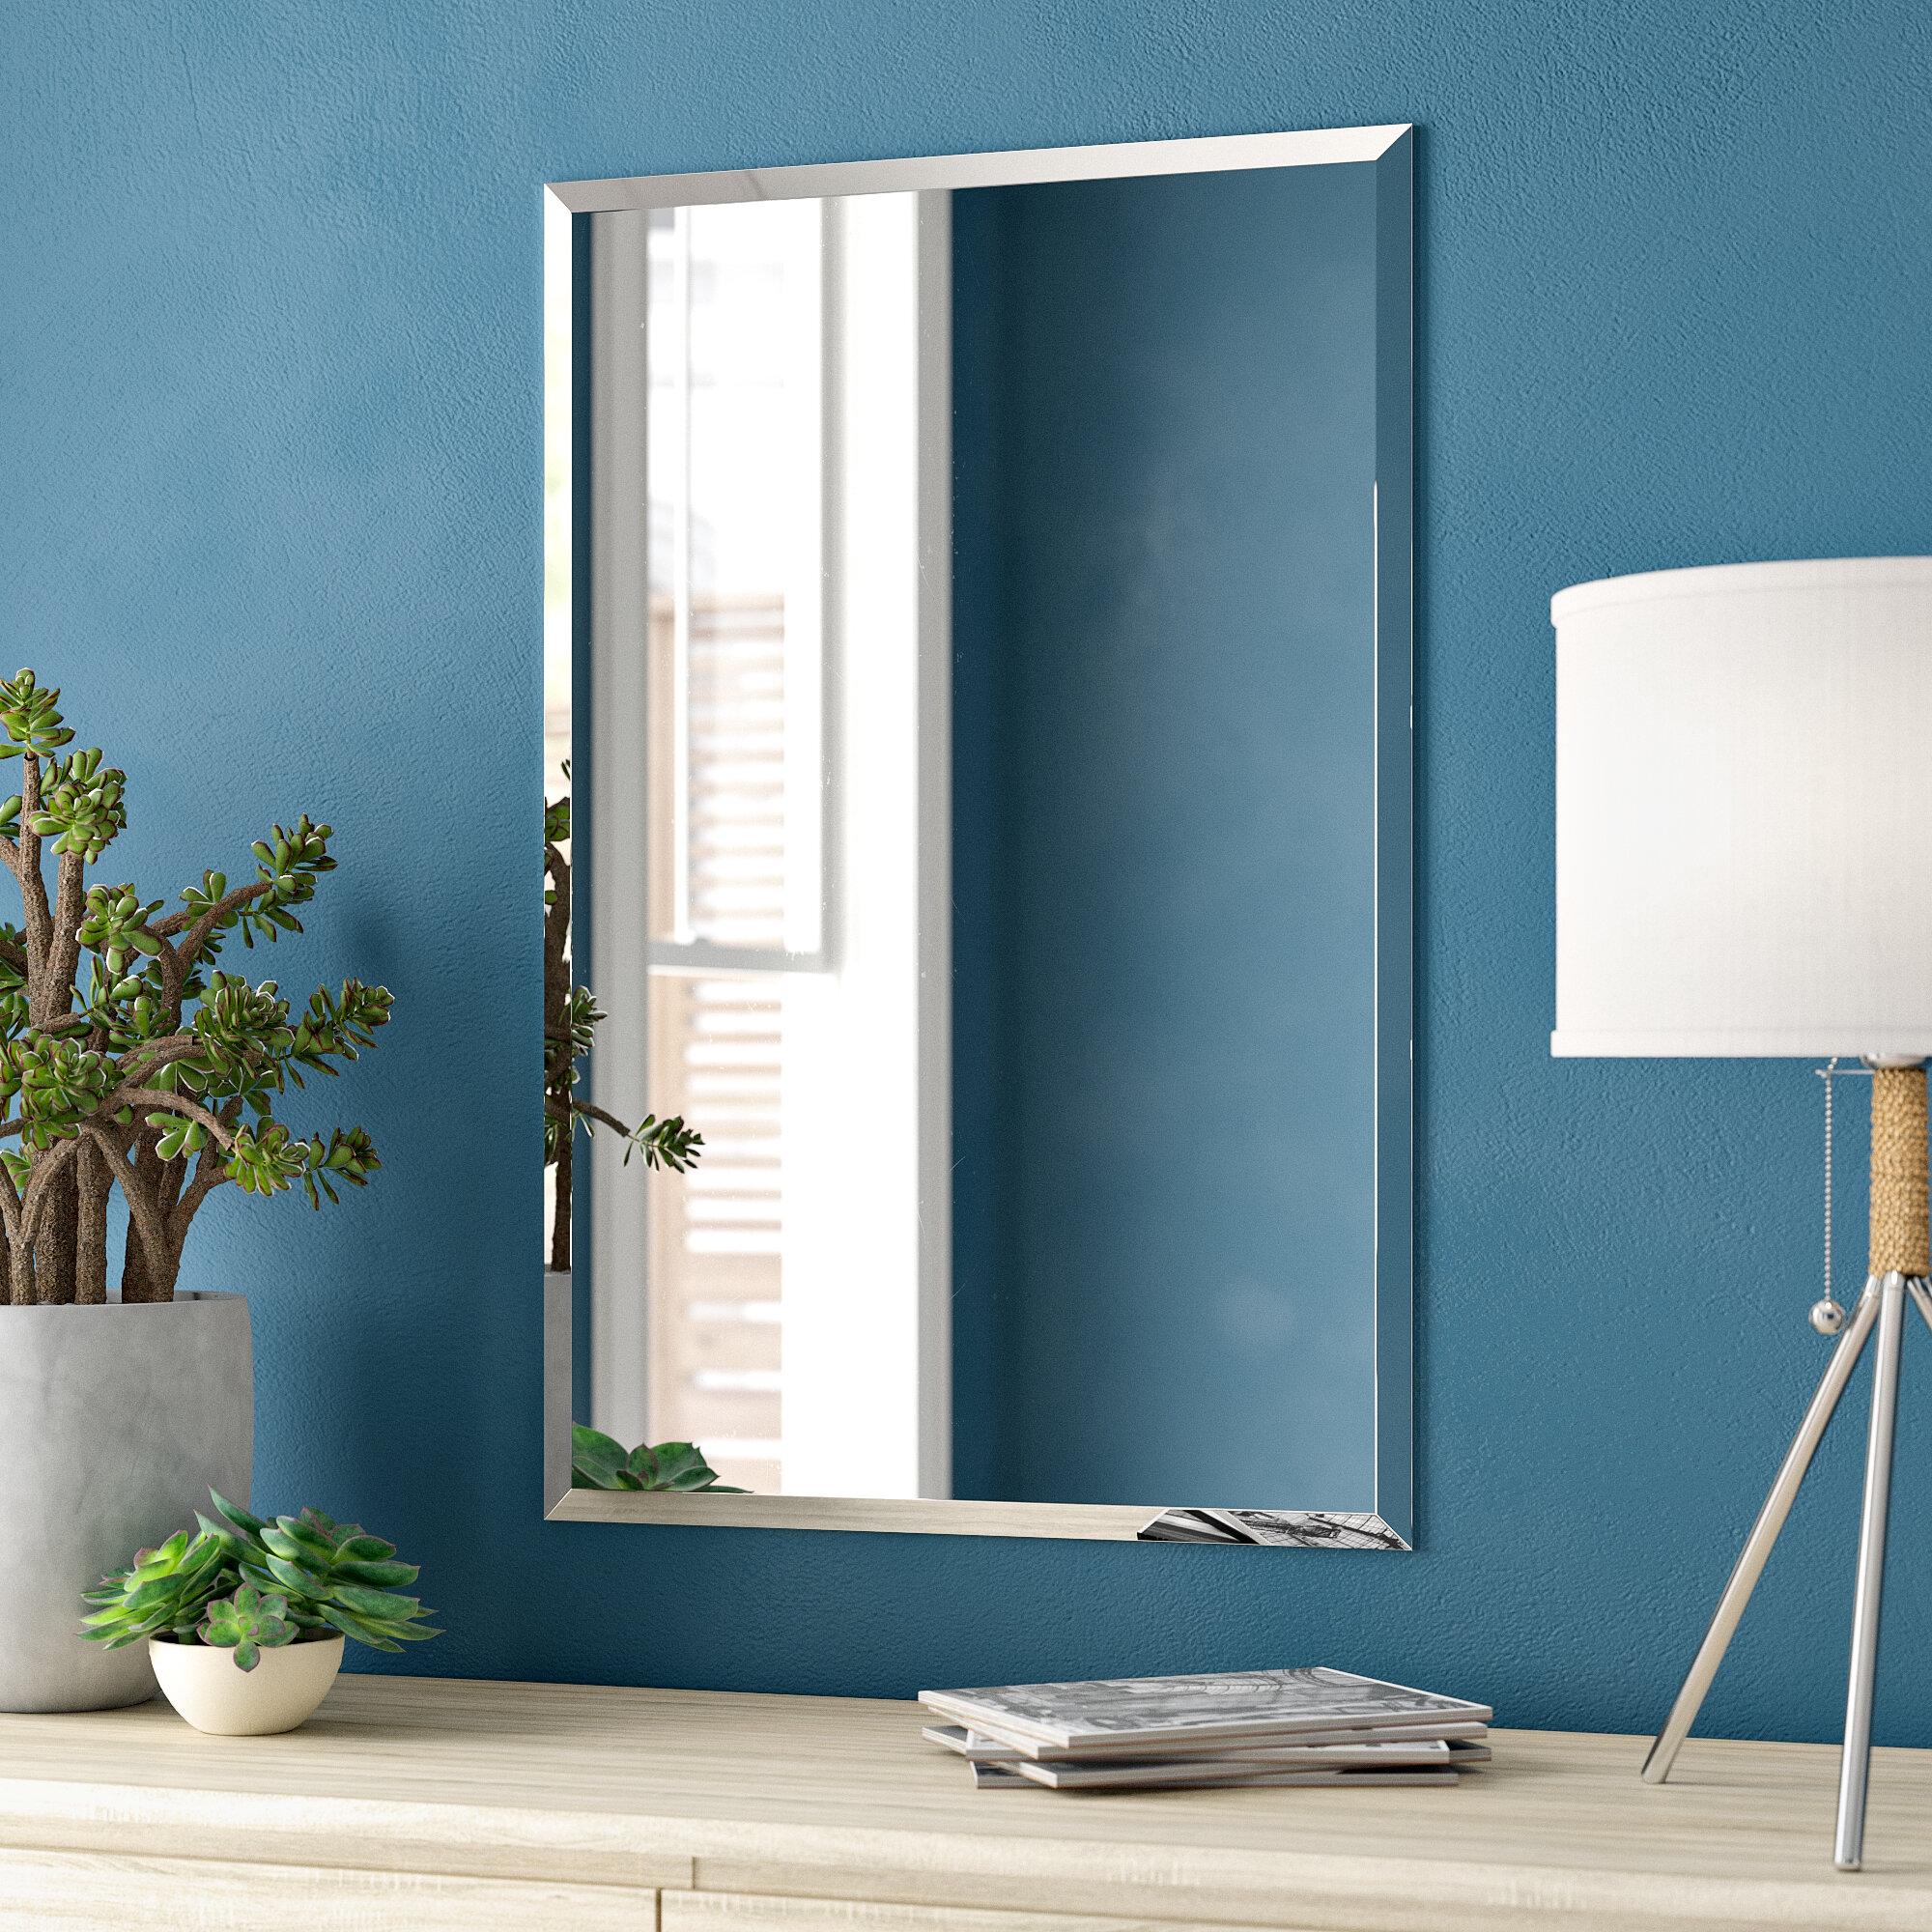 Large Bathroom Mirrors You Ll Love In 2021 Wayfair